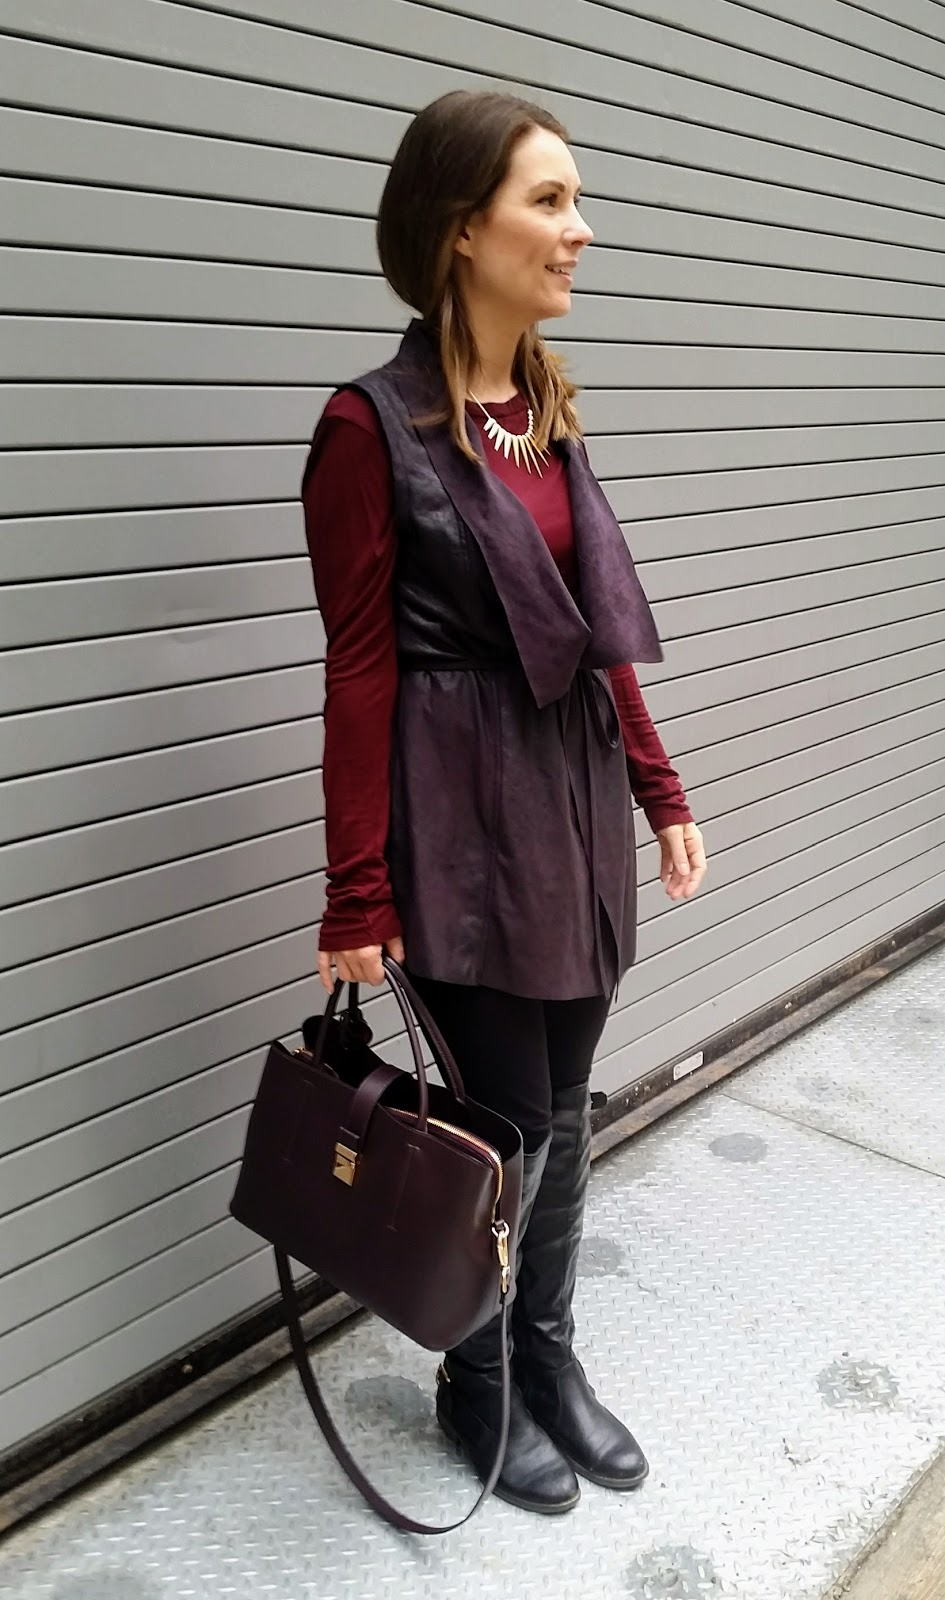 Black Suede Vest, Over The Knee Boots, Oxblood Sweater, Oxblood Purse